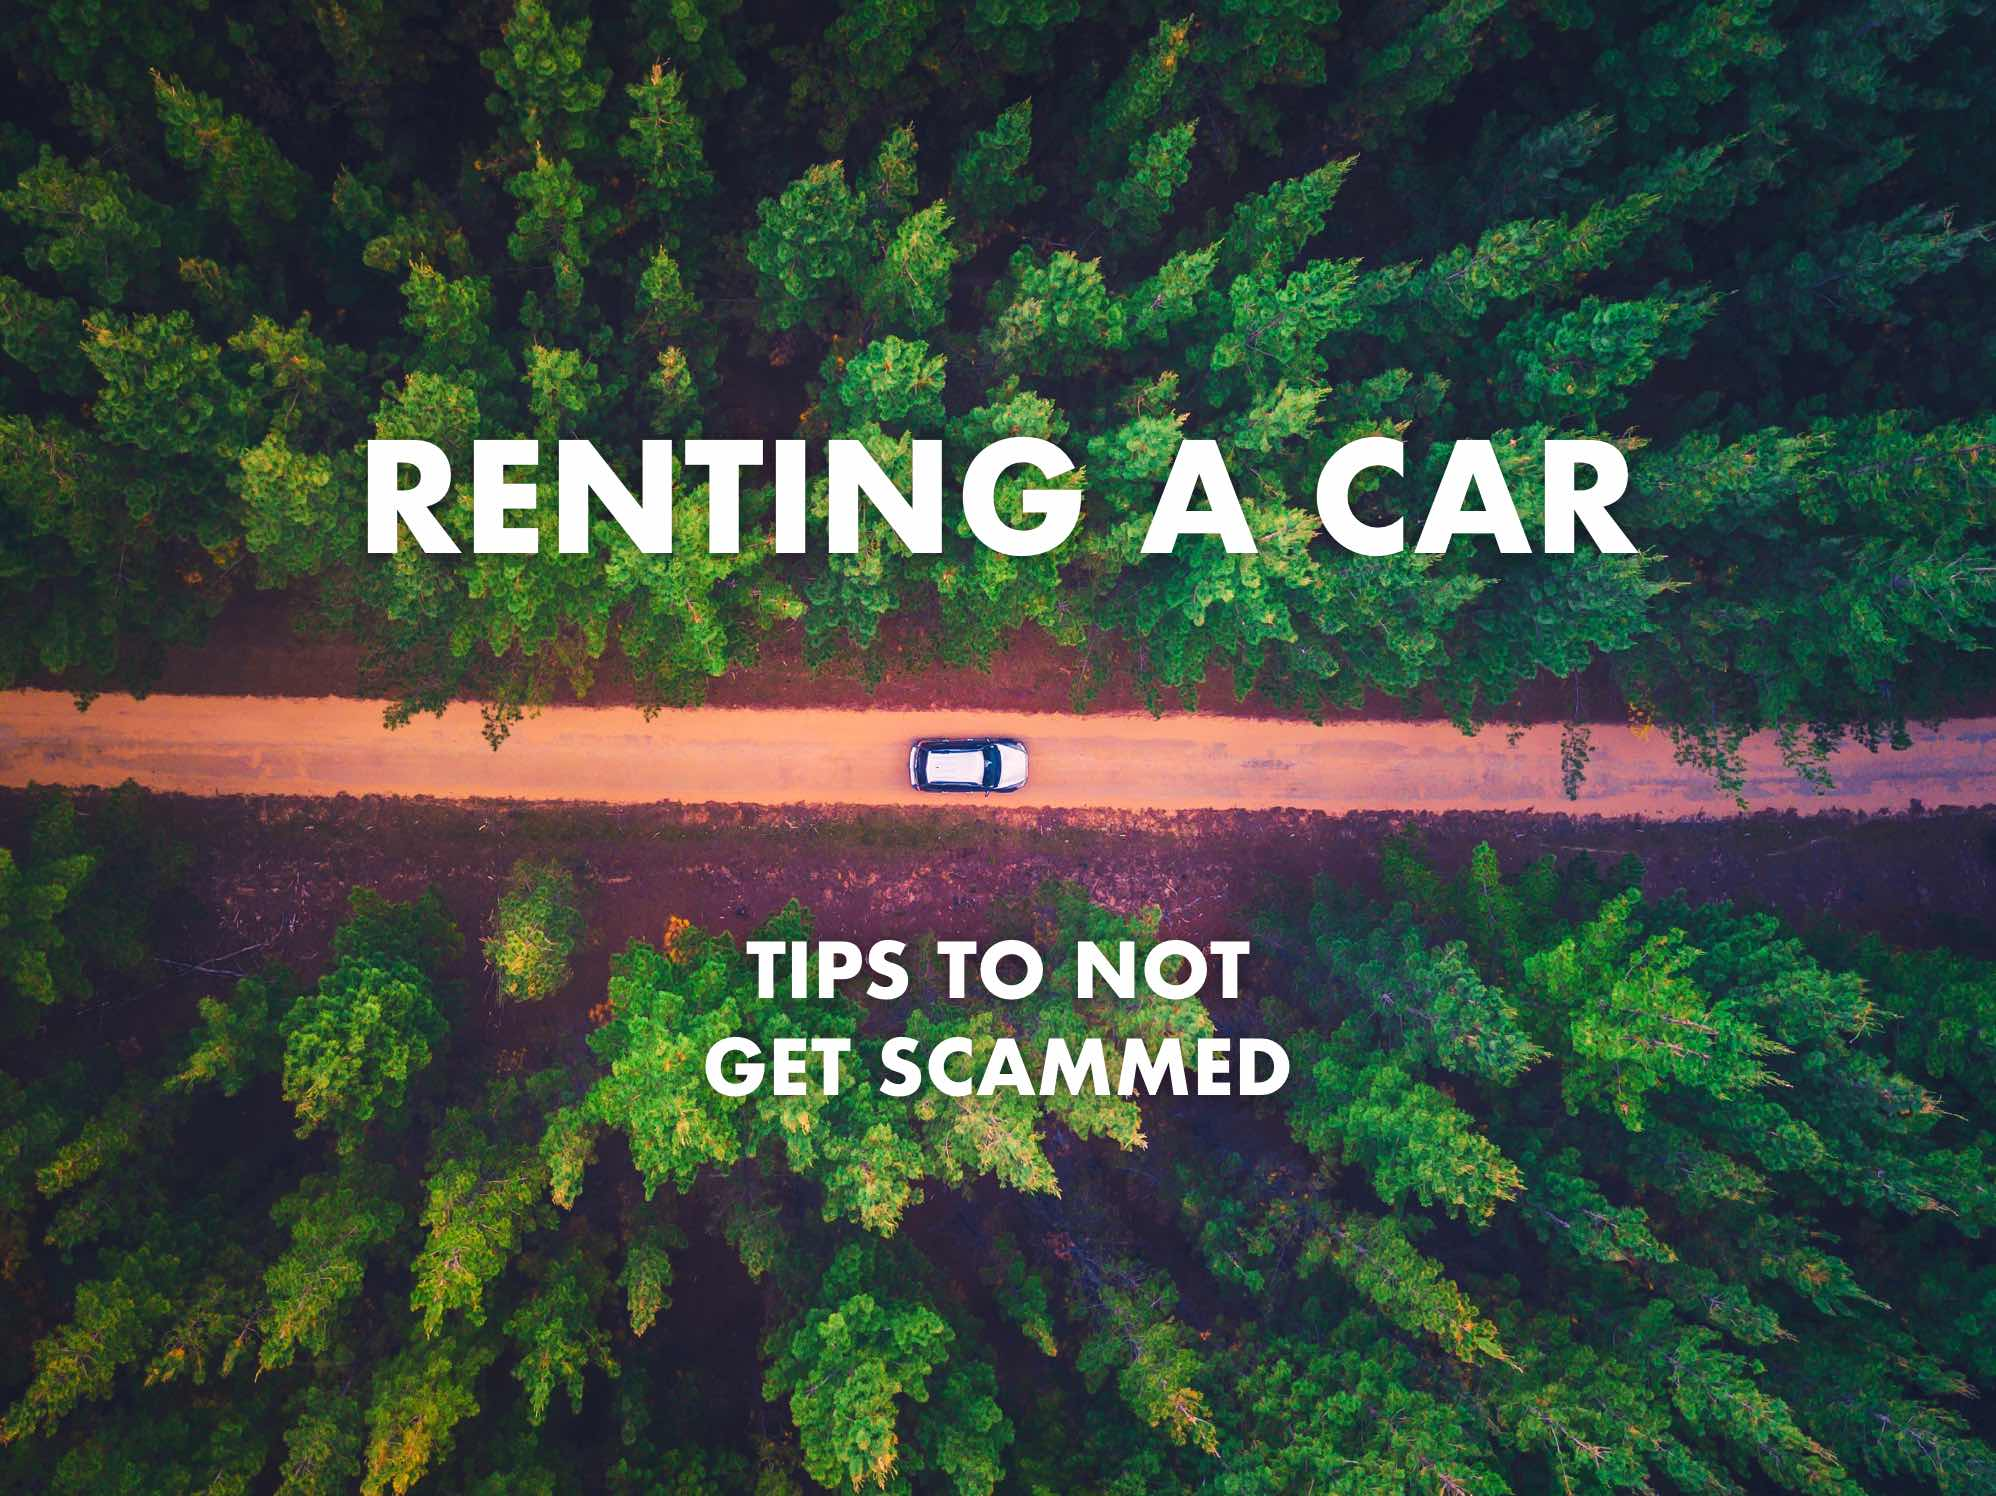 Rental Car Tips & Tricks: How to Rent a Car With no Scams